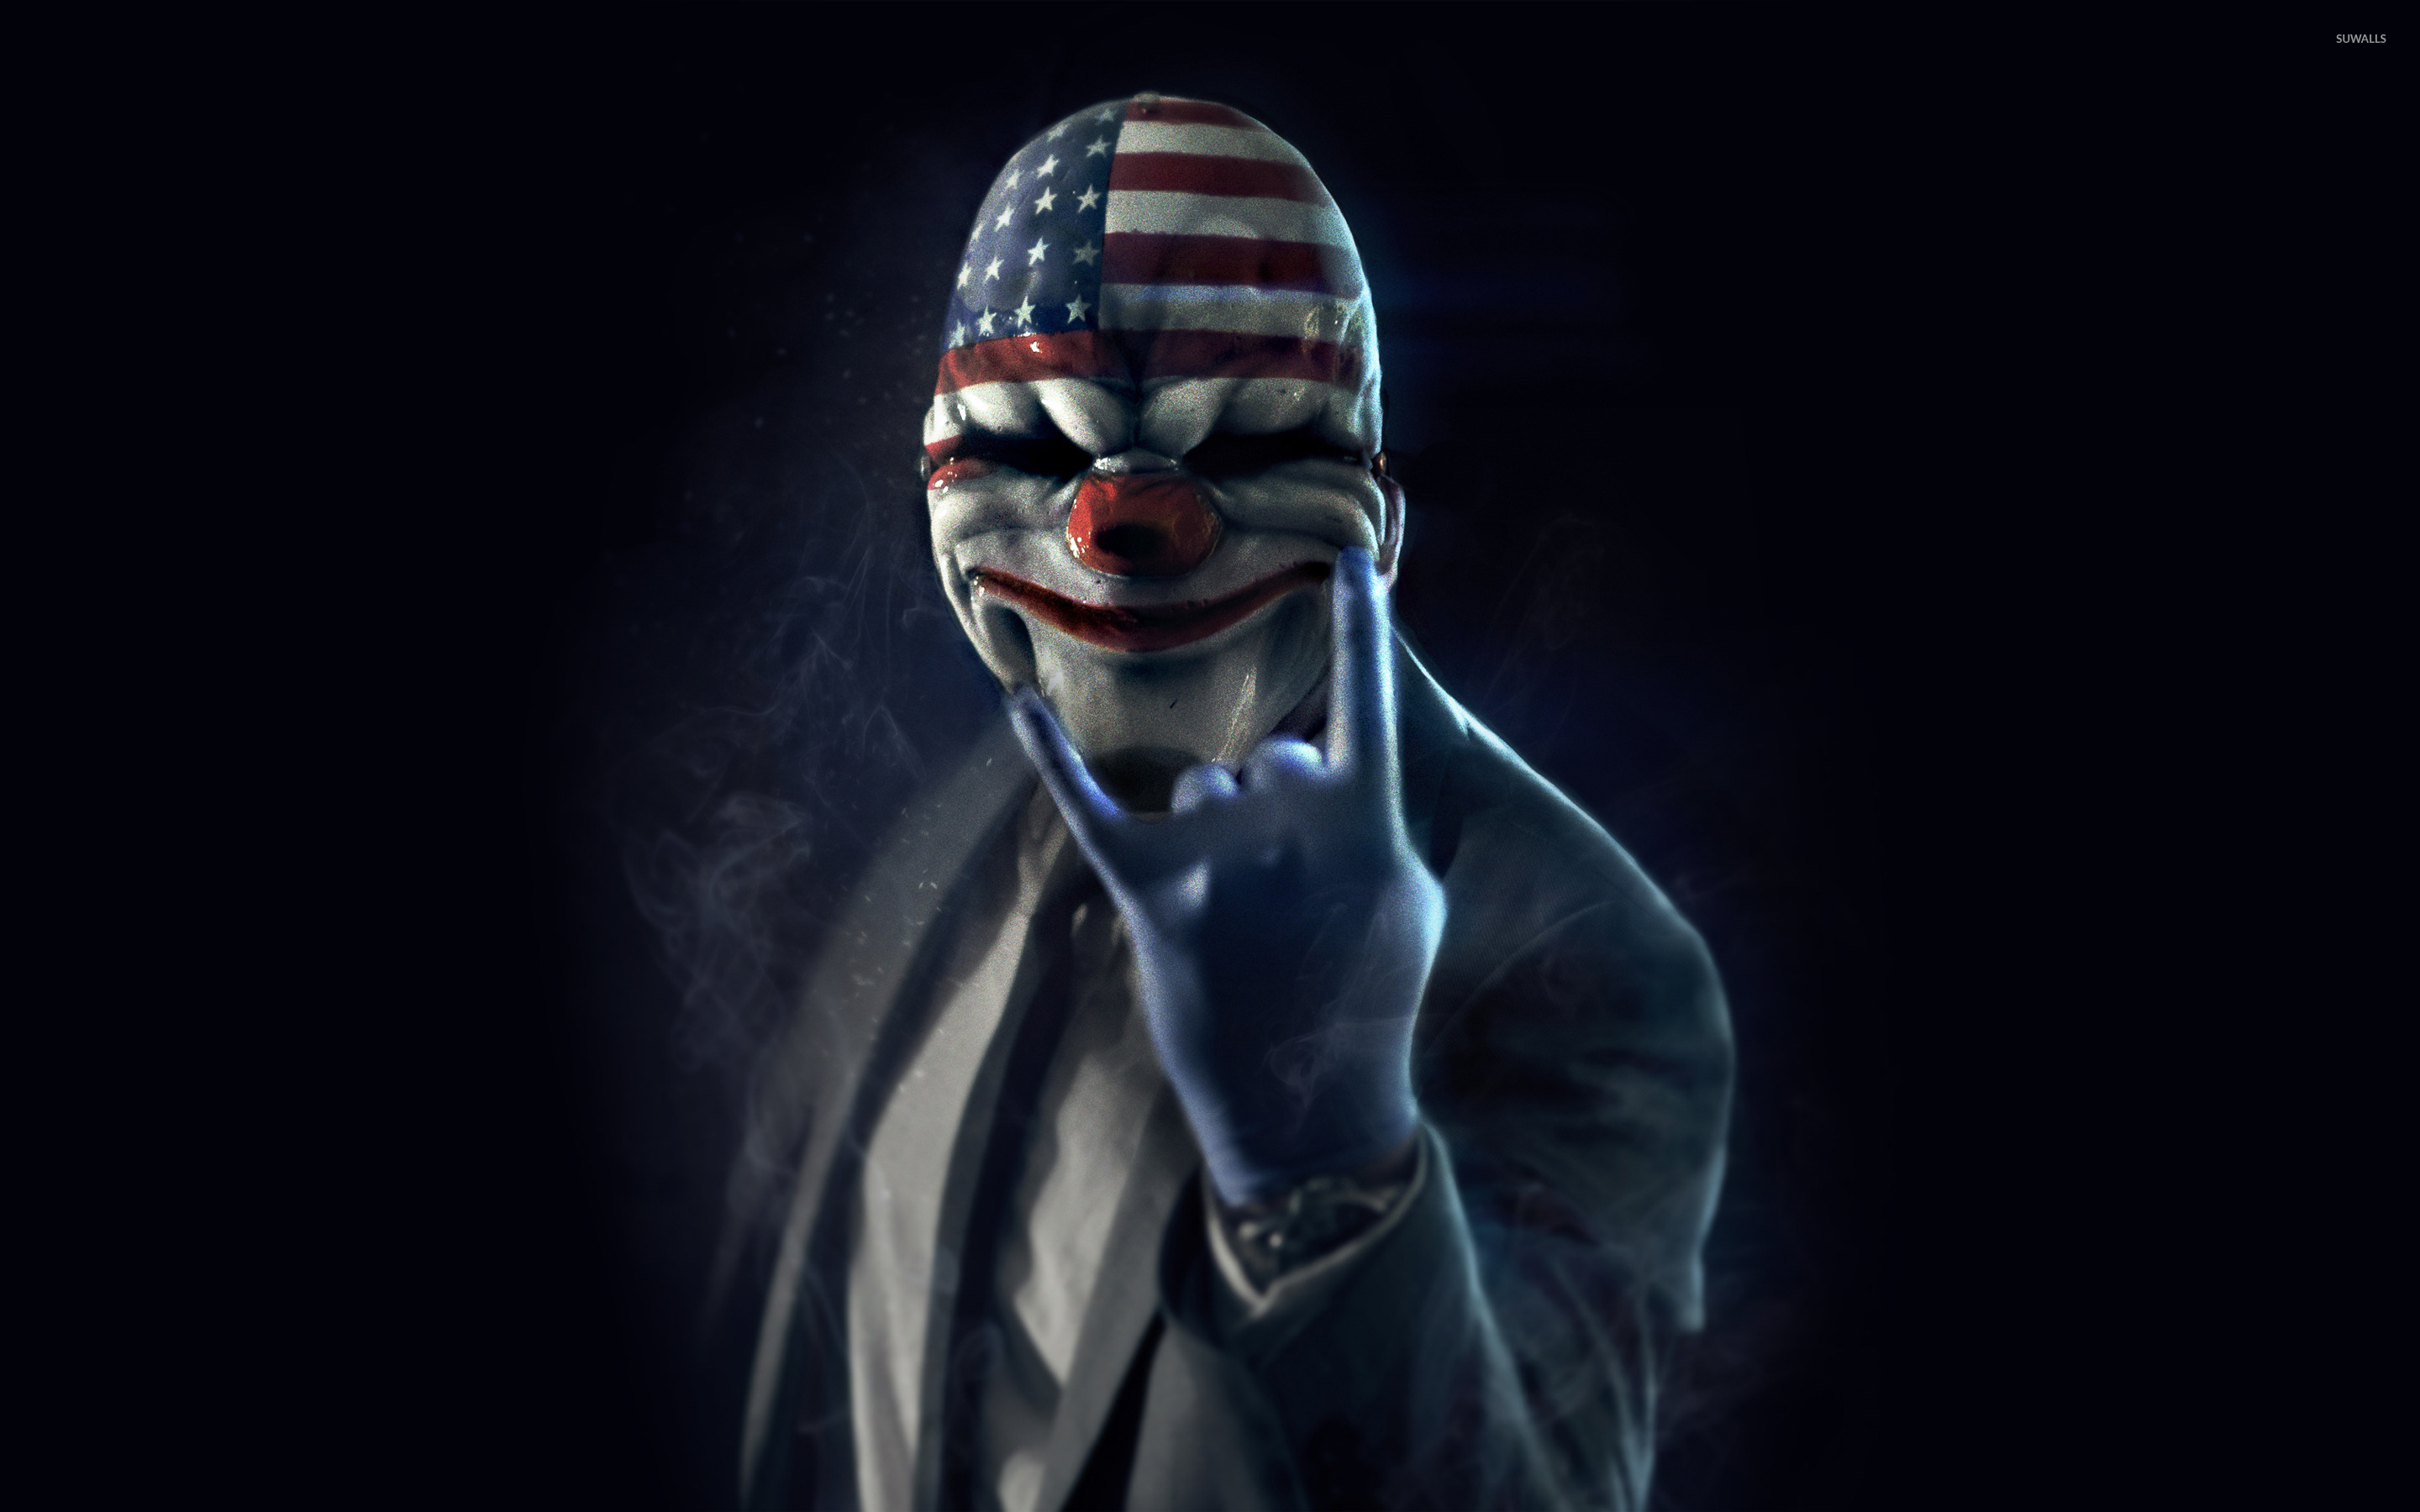 Payday 2 2 Wallpaper Game Wallpapers 22919